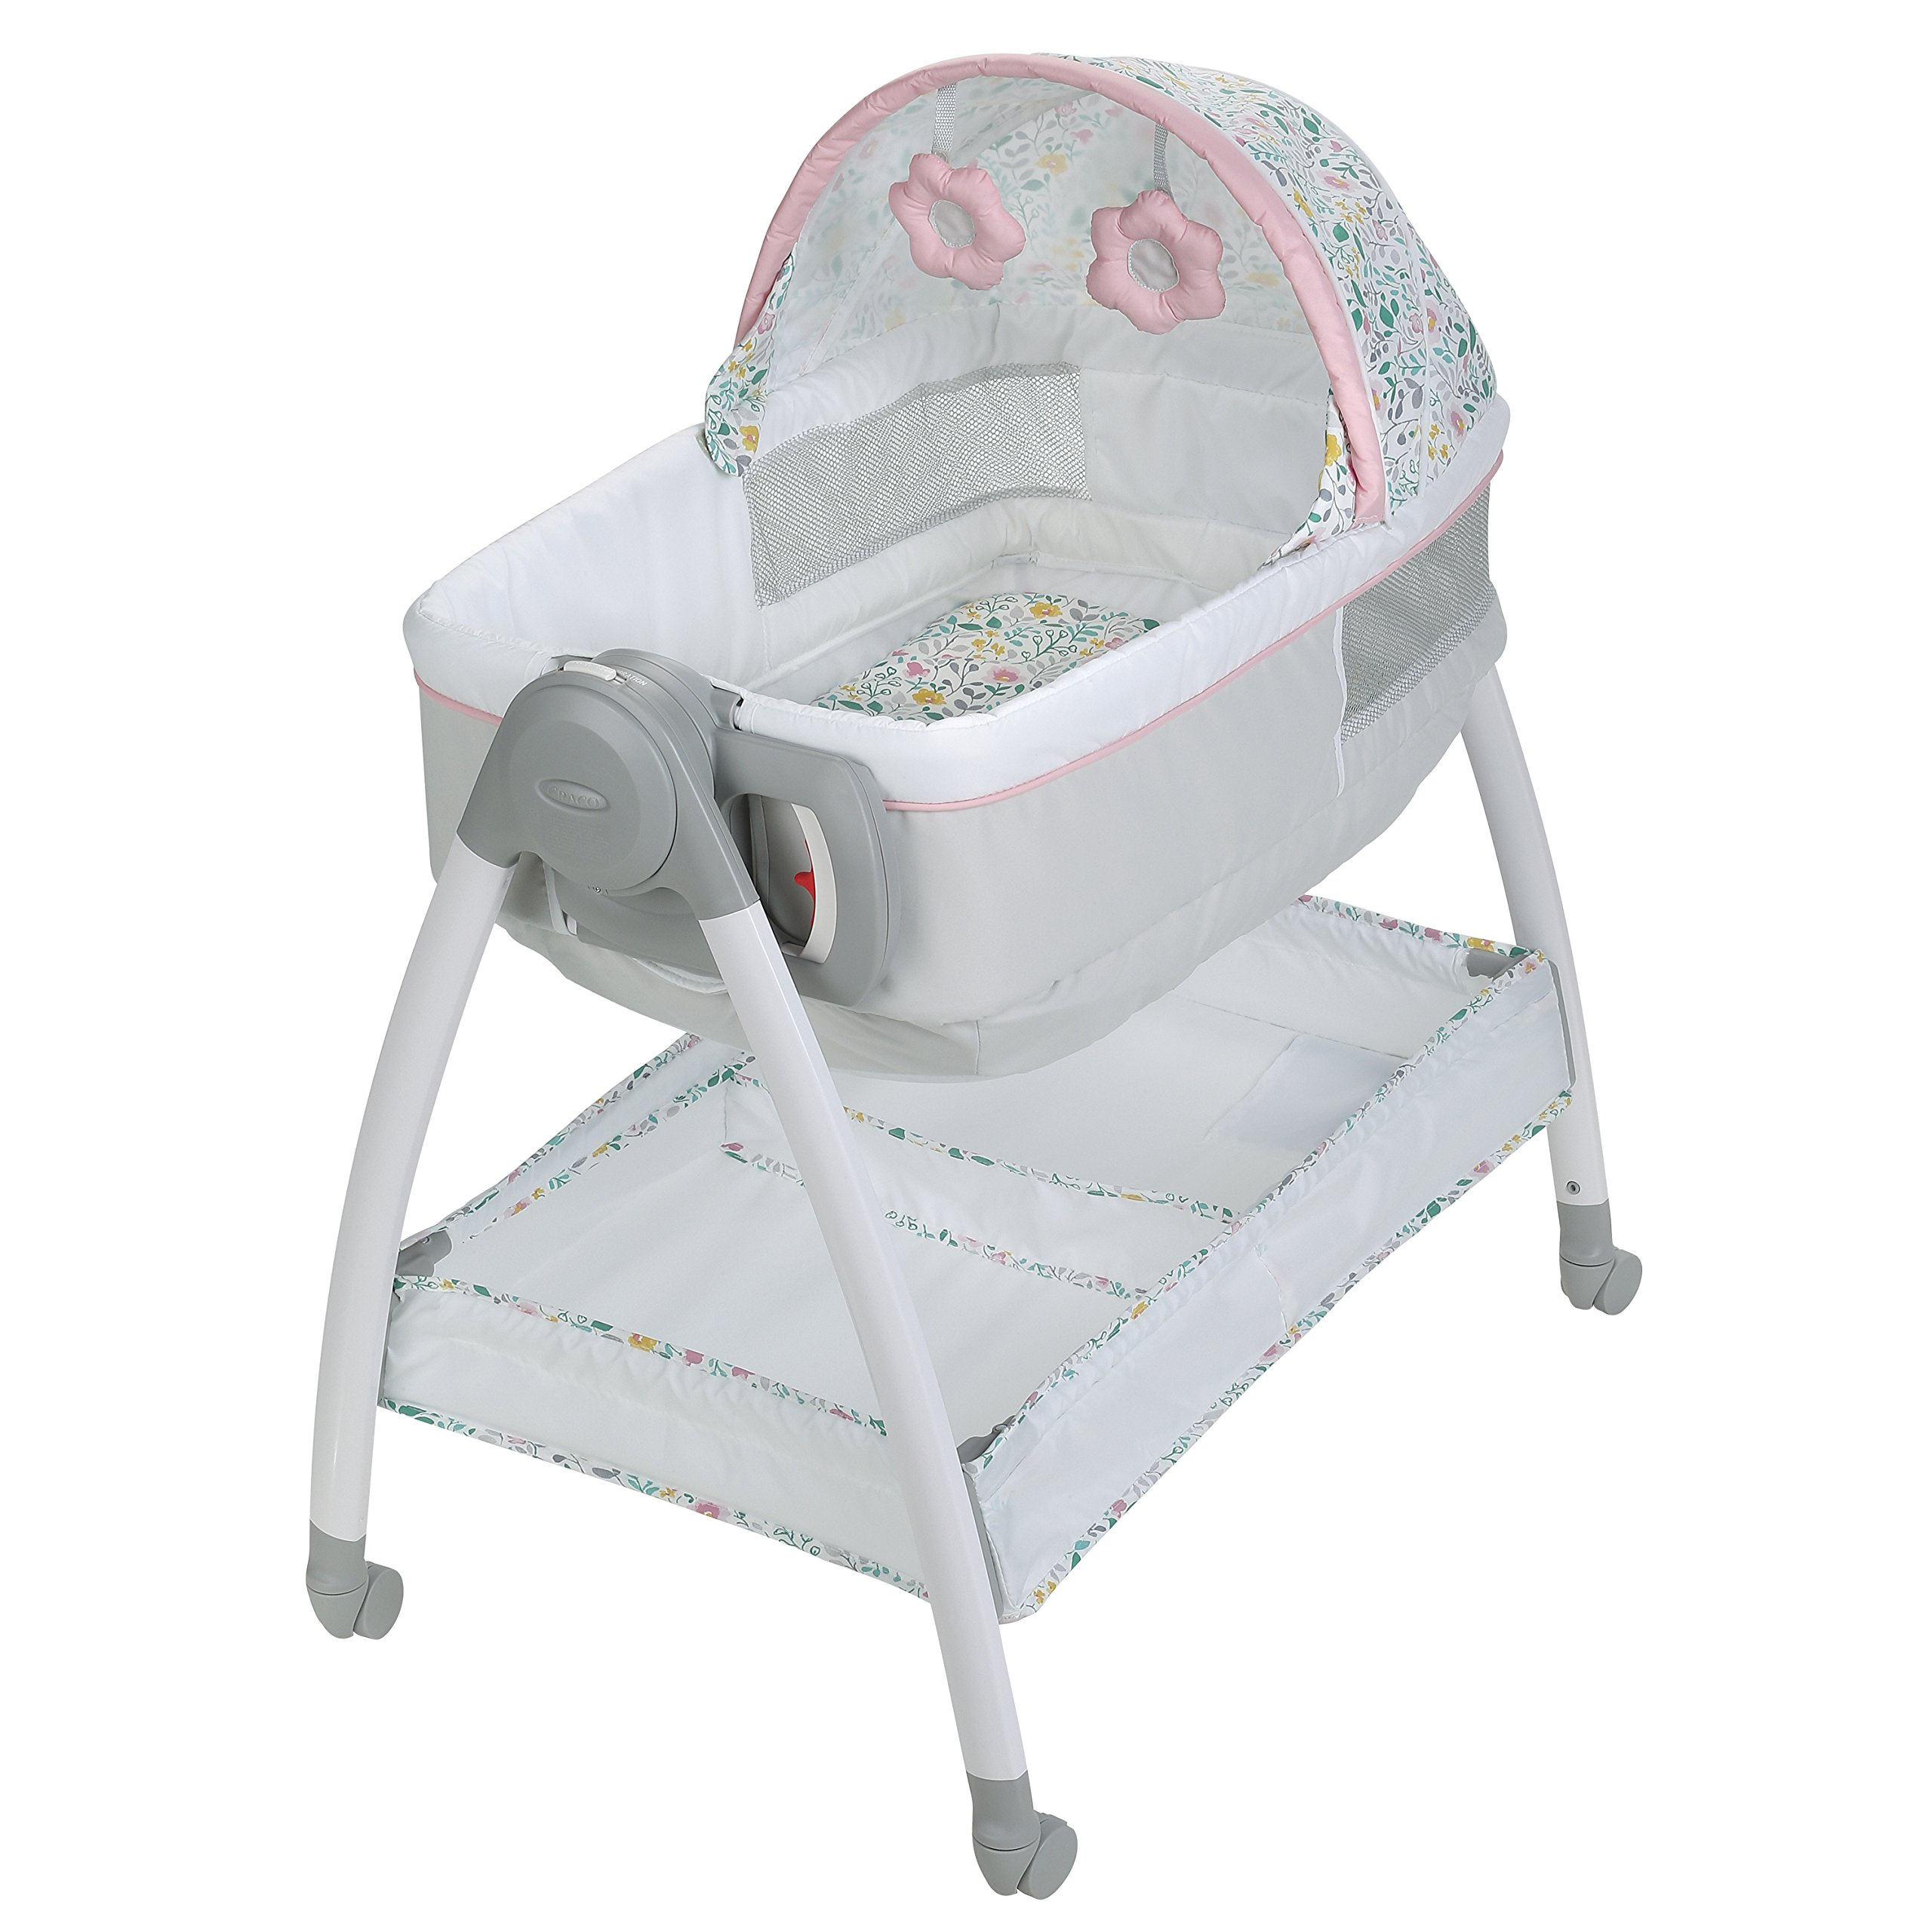 Amazon.com : Graco Oasis with Soothe Surround Technology